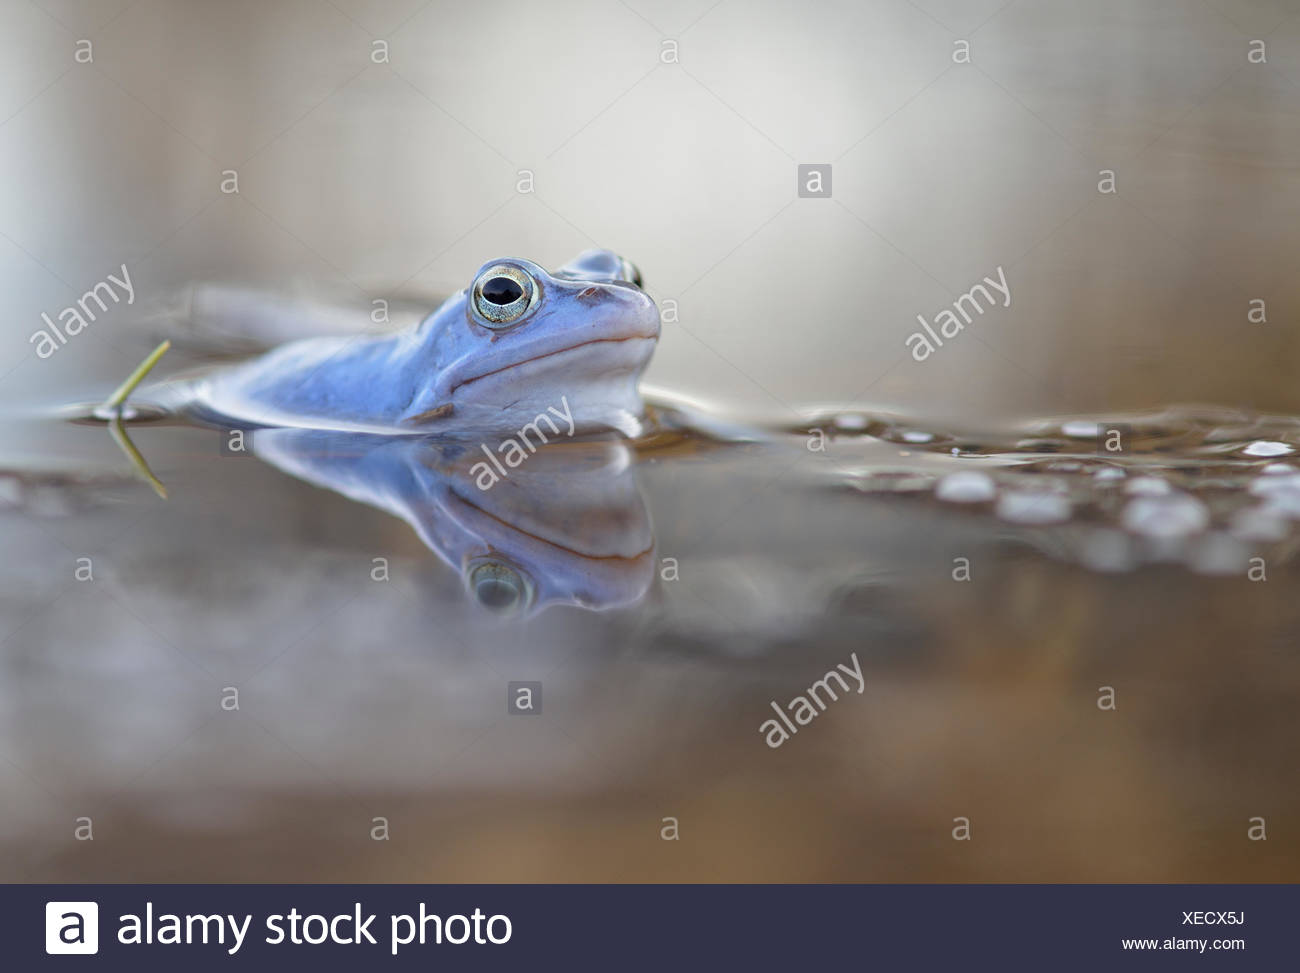 Moor frog (Rana arvalis), blue coloured male with spawn, during mating season, in spawning waters, Elbe, Saxony-Anhalt, Germany - Stock Image